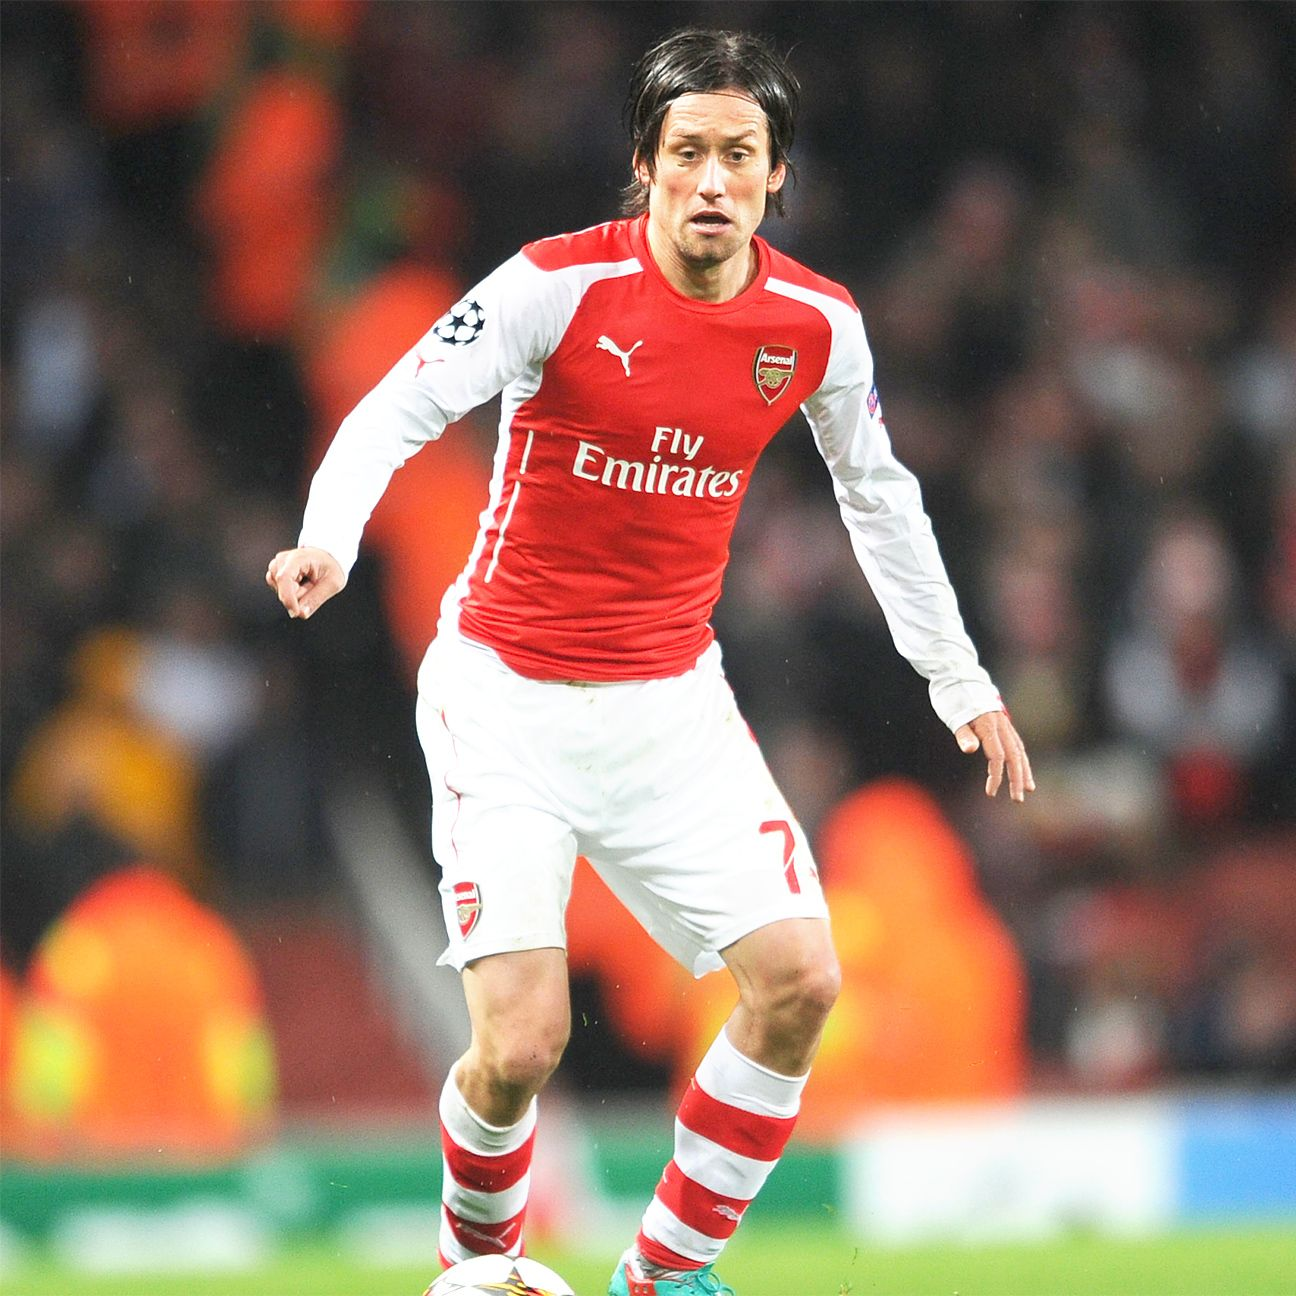 After nine seasons at Arsenal, Tomas Rosicky could be on the way out this summer.